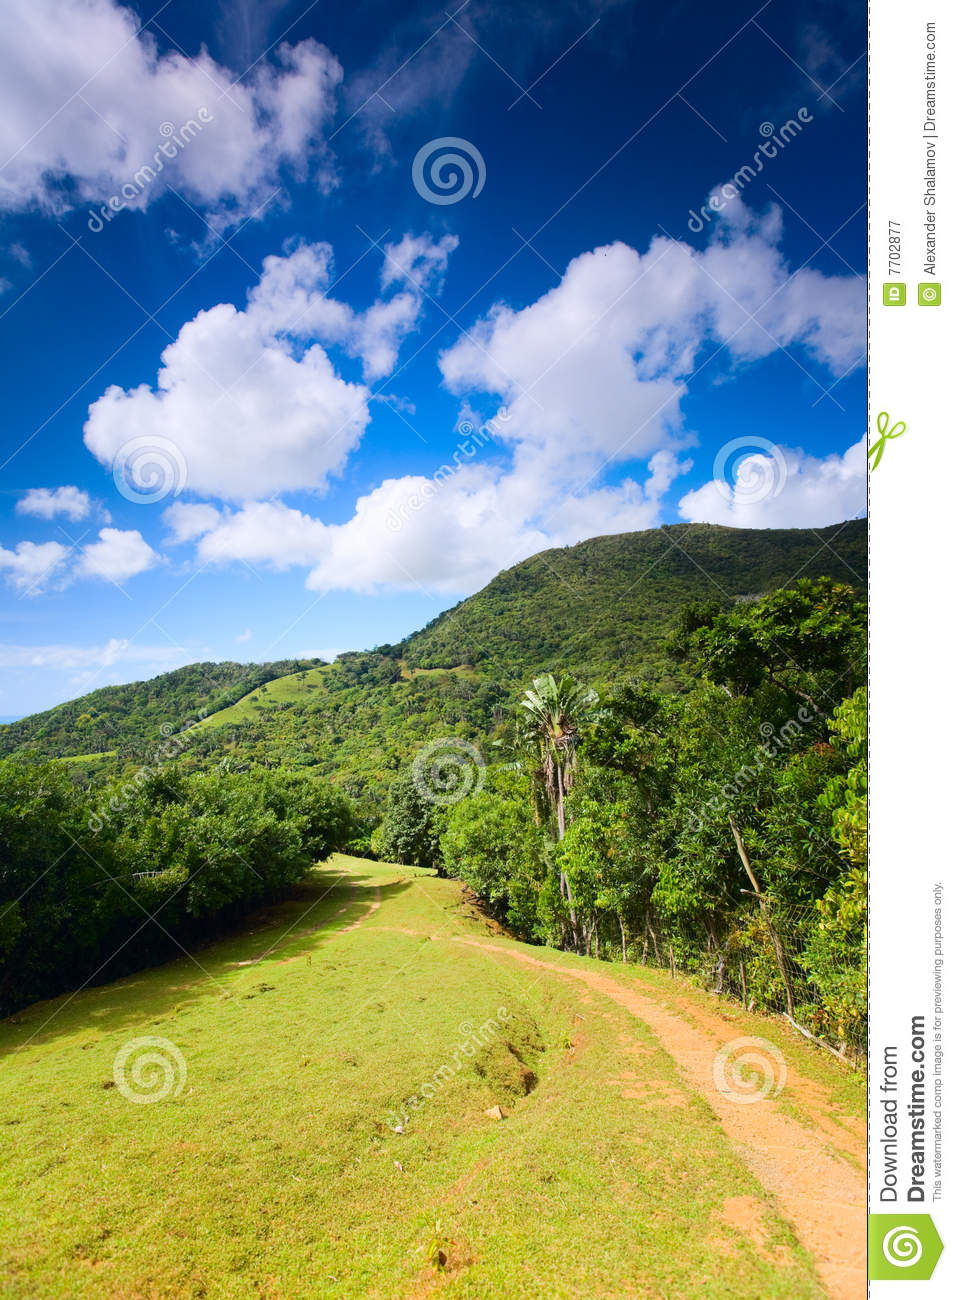 Download Eco-tourism stock image. Image of slope, cloudy, grass - 7702877